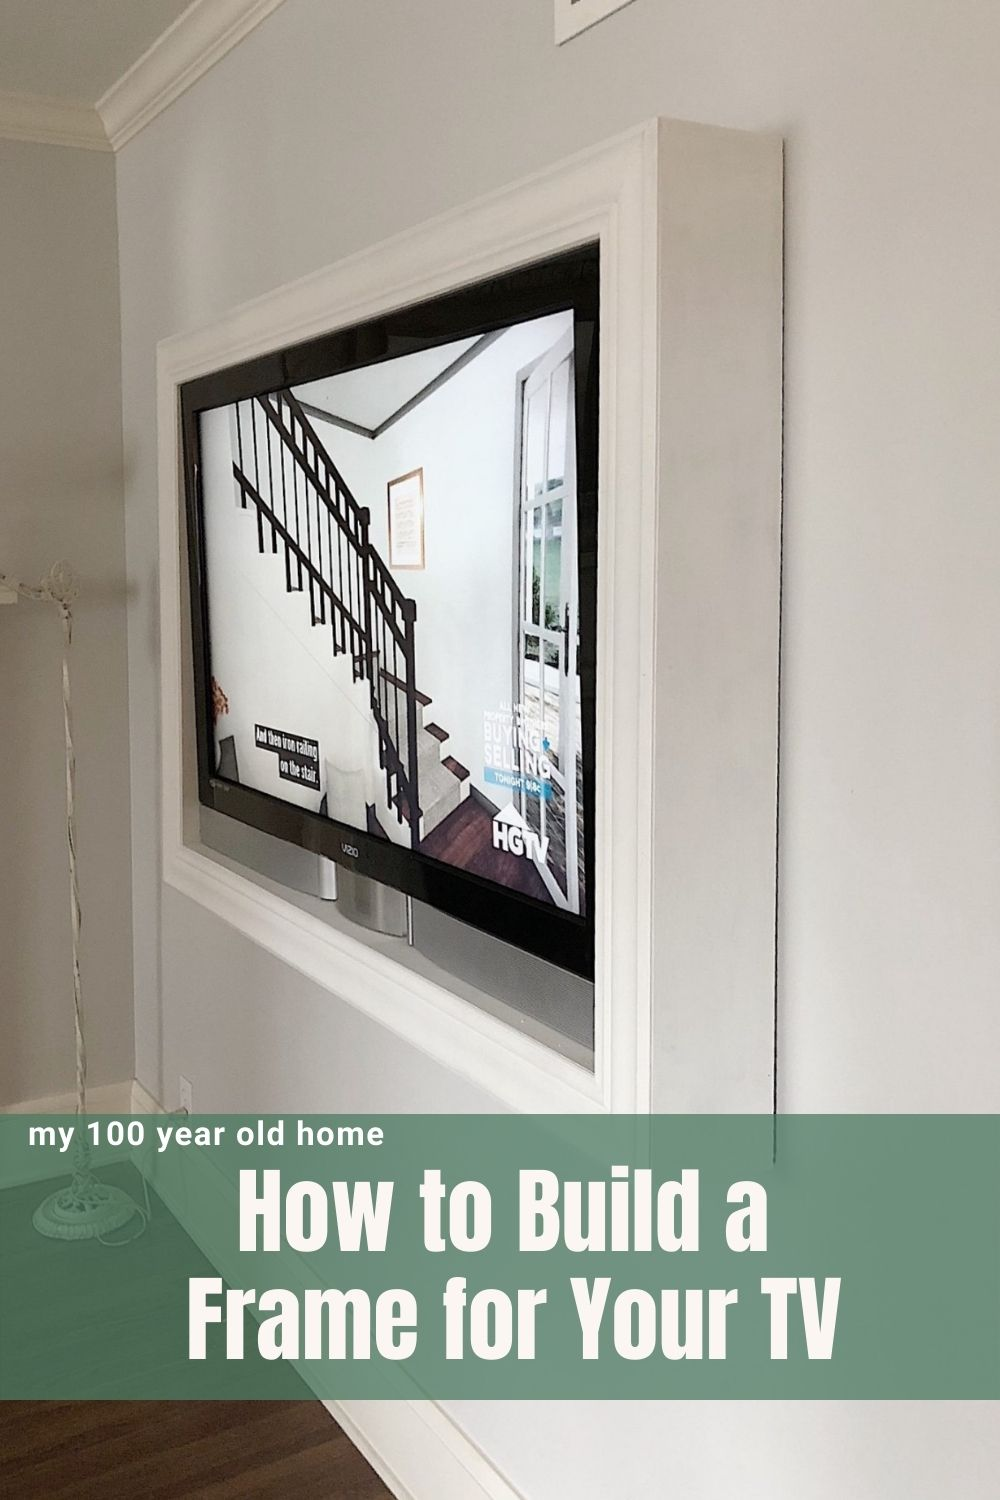 We love watching TV but I often don't love how televisions look in a room. Today I am going to share how to build an inexpensive TV art frame.